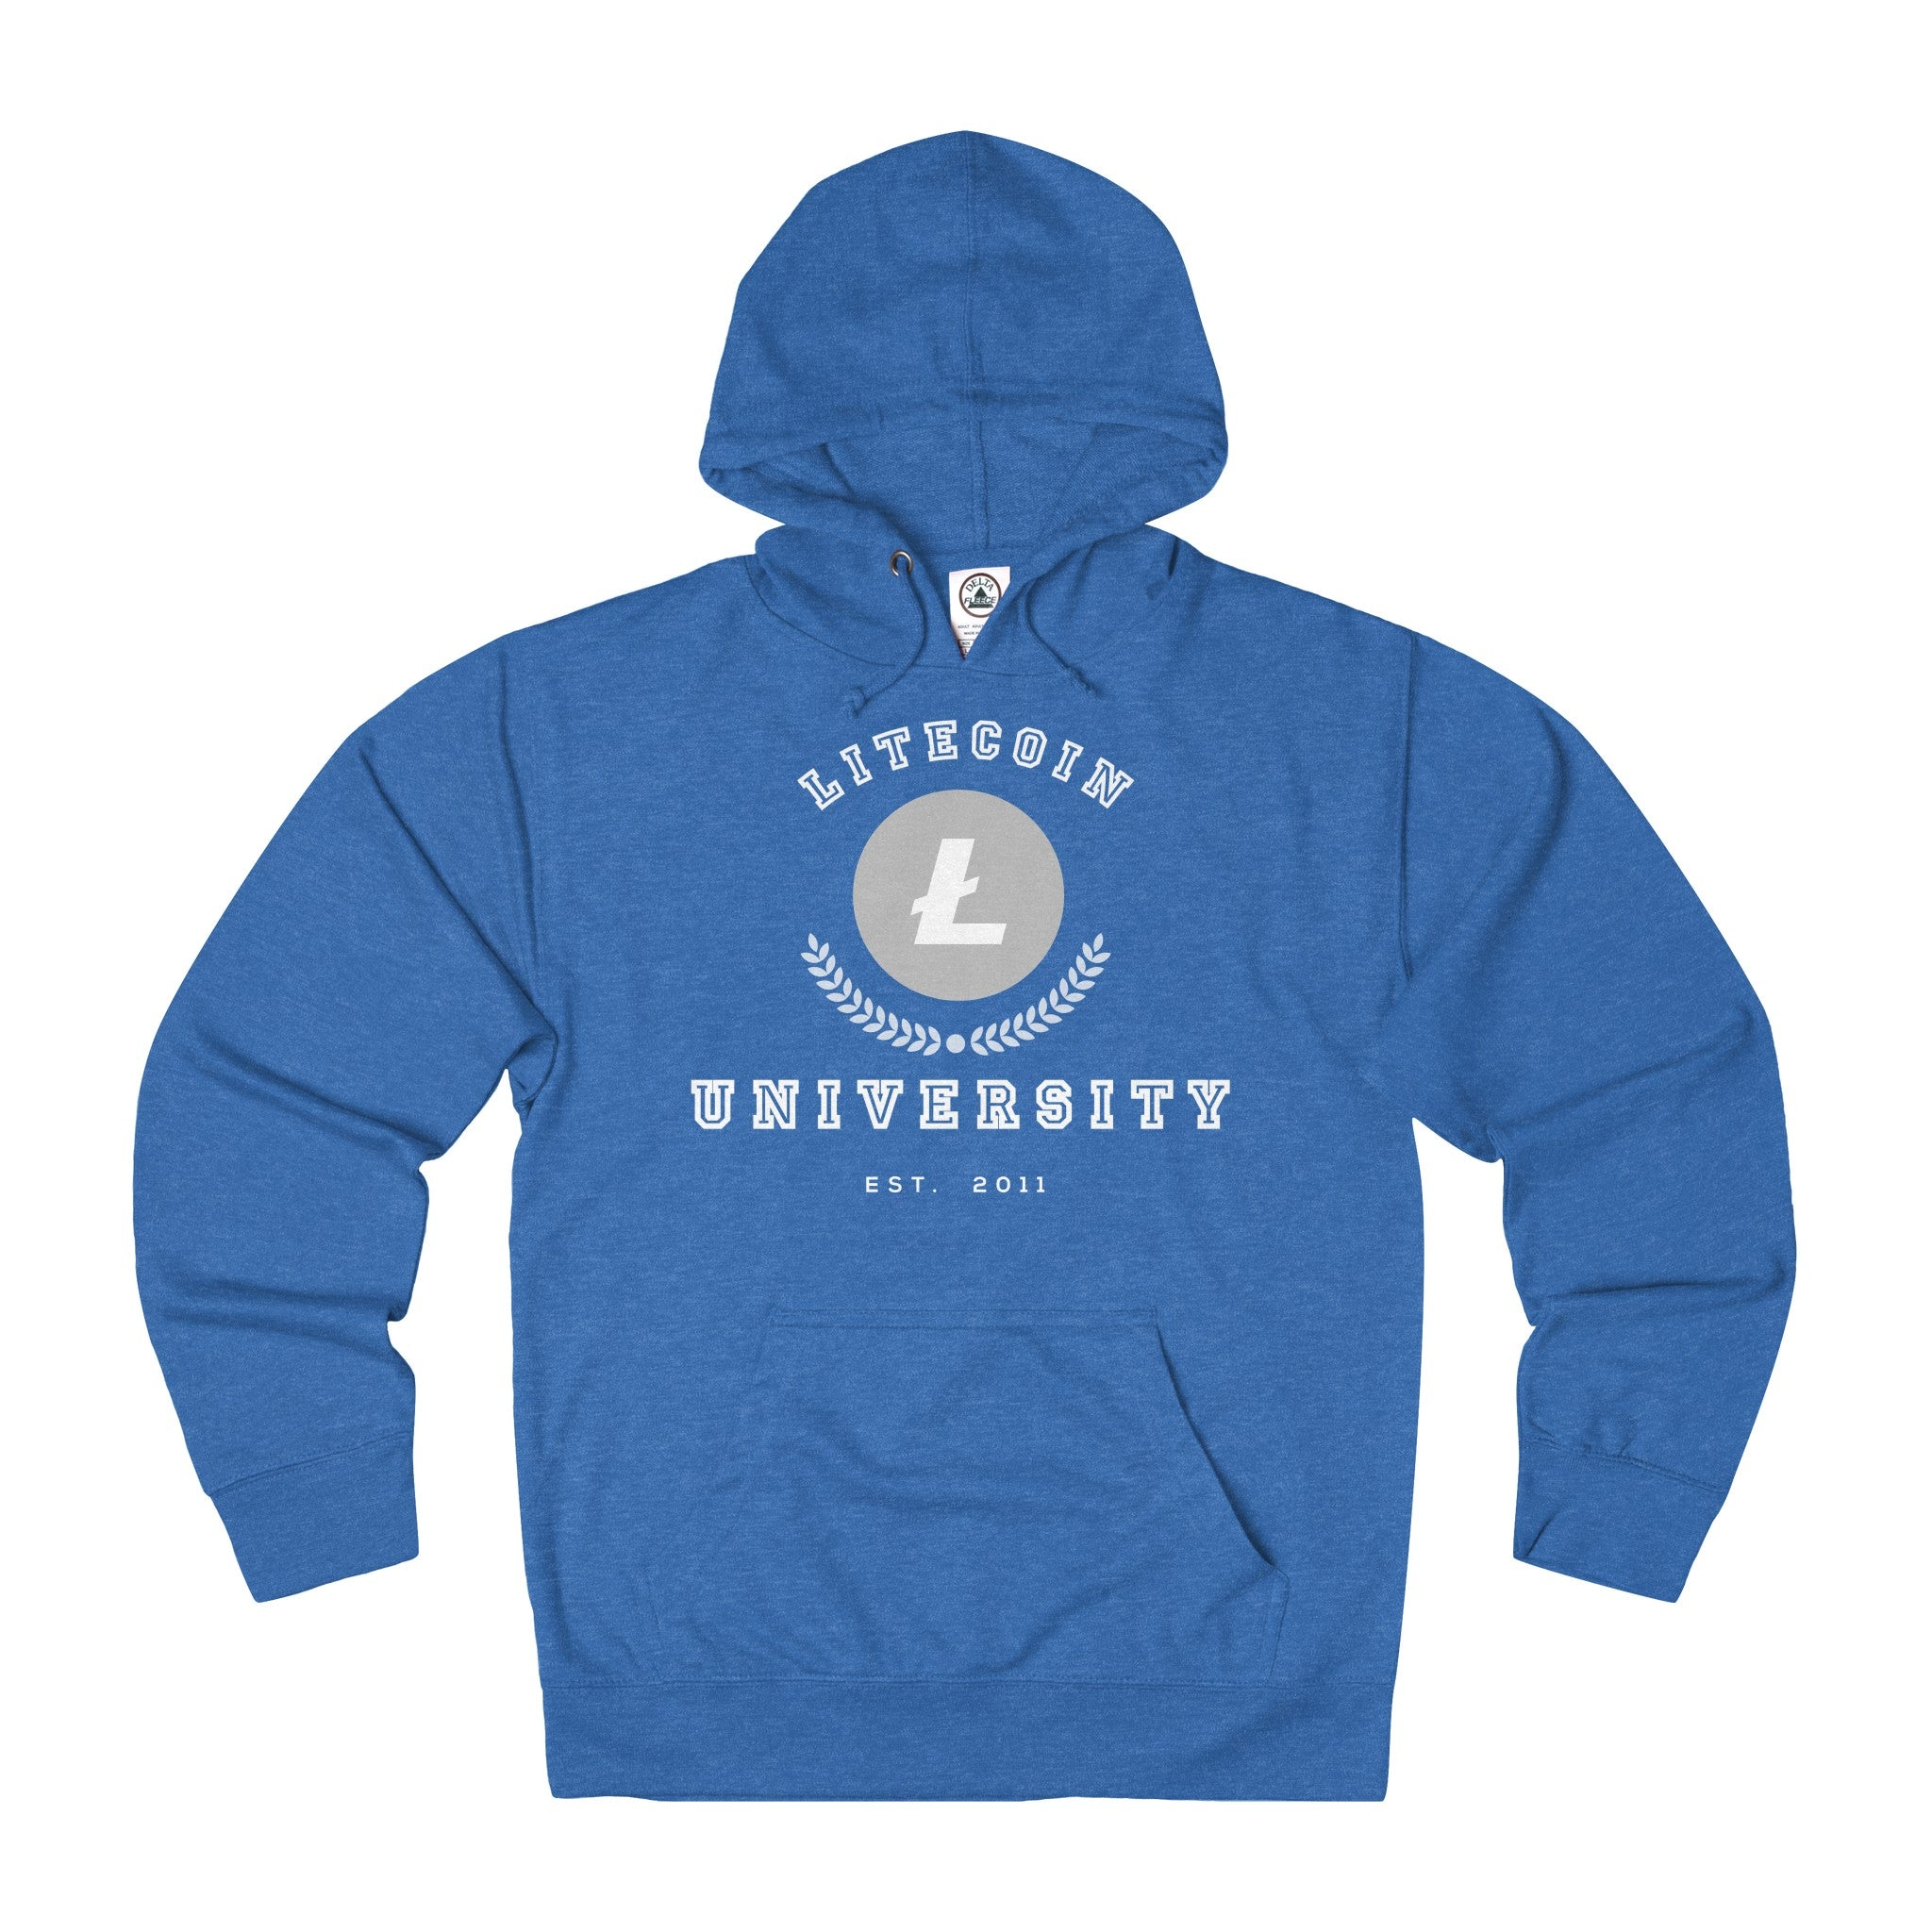 Litecoin University Adult Unisex French Terry Hoodie